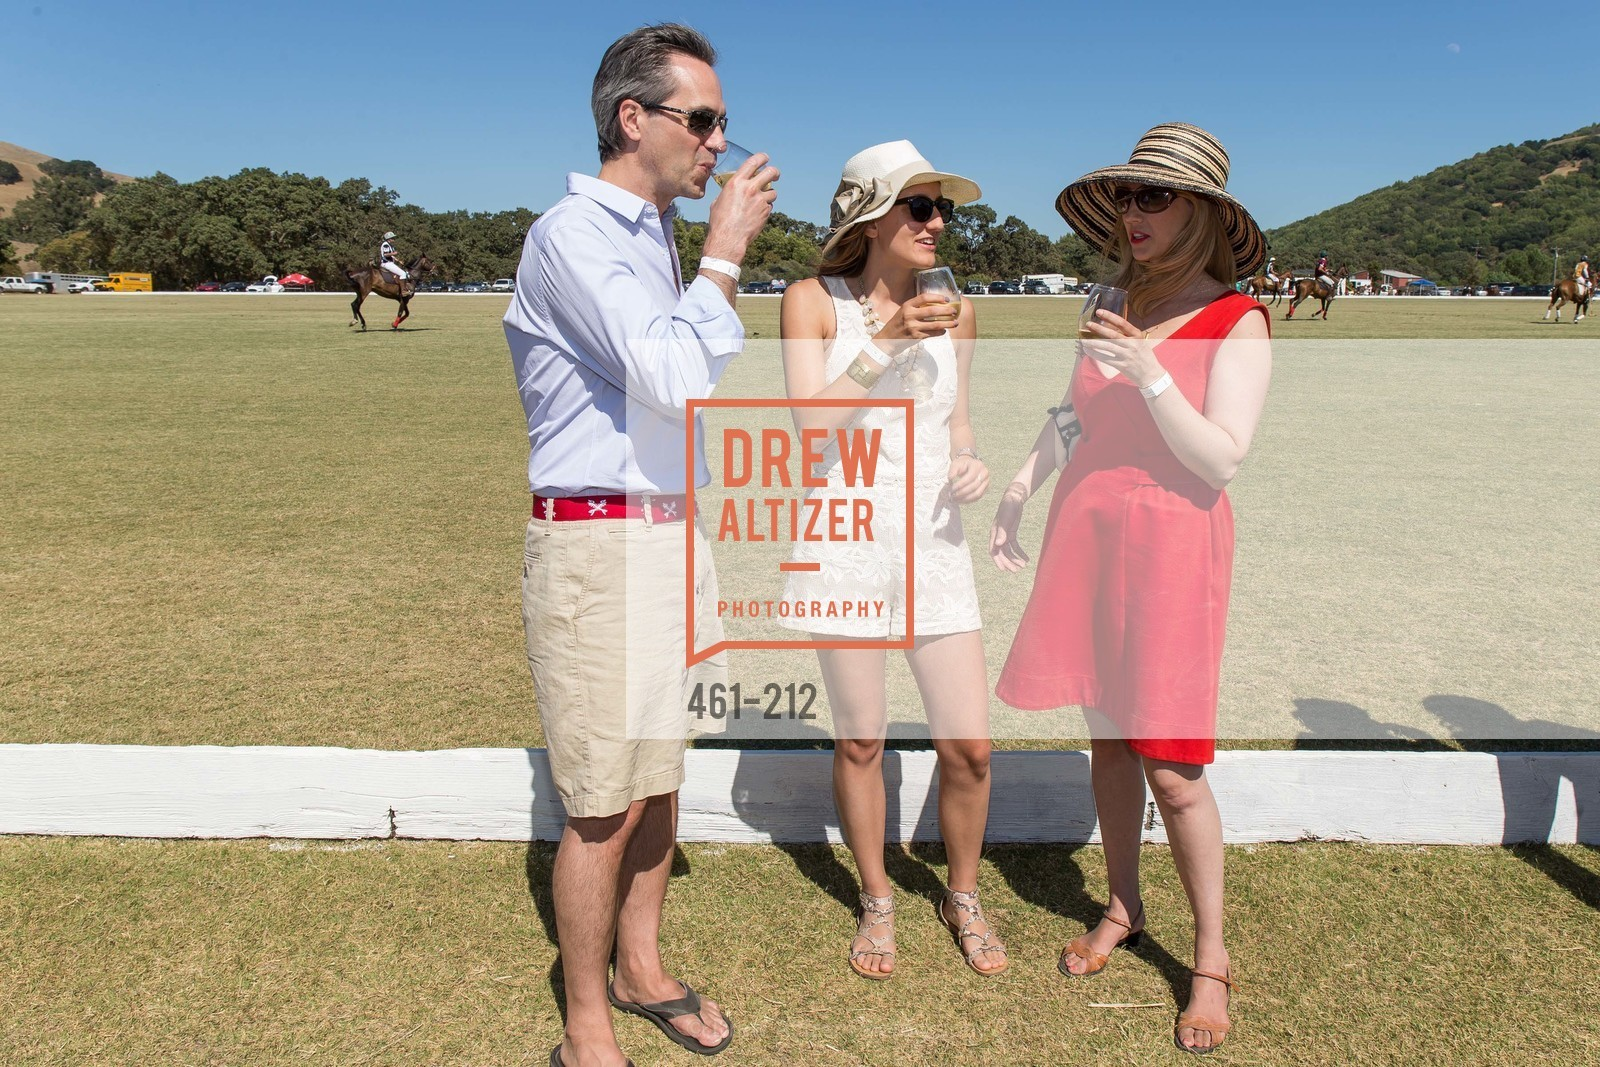 Chris Spill, Morgan Babbs, Frances Stark, Stick & Ball Oyster Cup Polo Tournament, Cerro Pampa Polo Club, July 25th, 2015,Drew Altizer, Drew Altizer Photography, full-service agency, private events, San Francisco photographer, photographer california